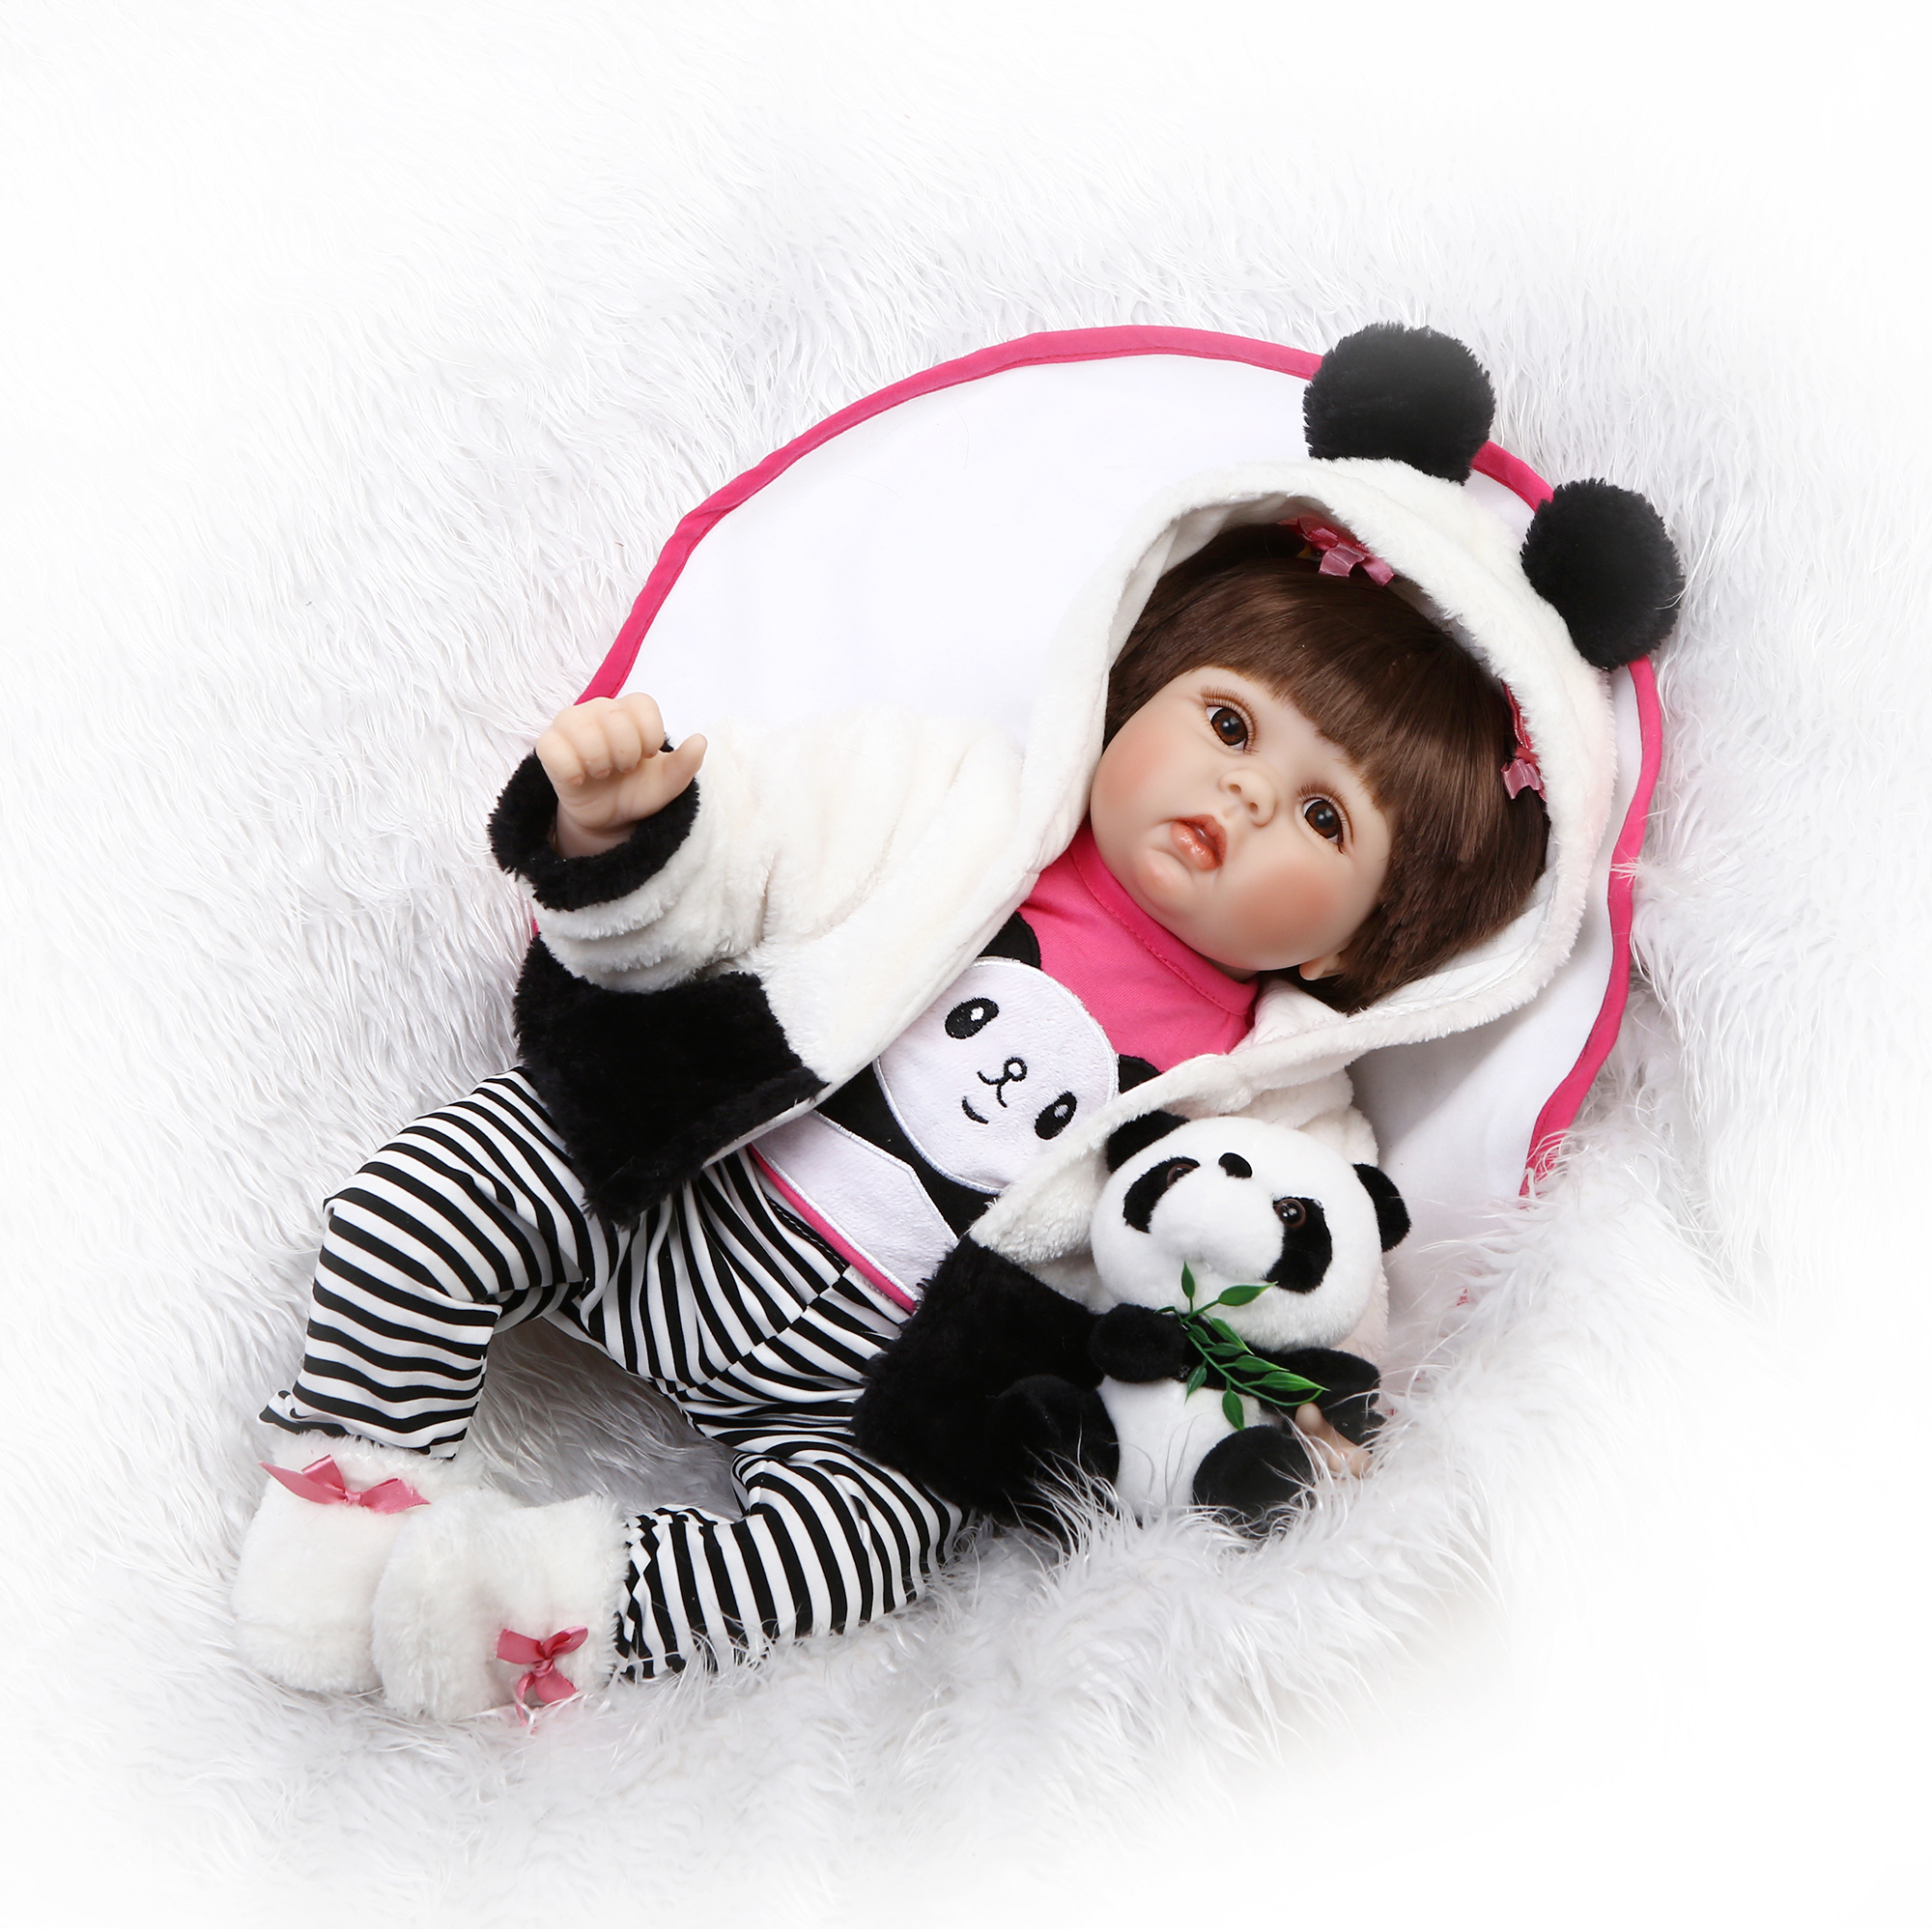 22 55cm Reborn Doll with Soft Real Gentle Touch Realistic Handmade Bebe Reborn Doll Panda Clothes Toys for Girls XMAS Gift pink wool coat doll clothes with belt for 18 american girl doll